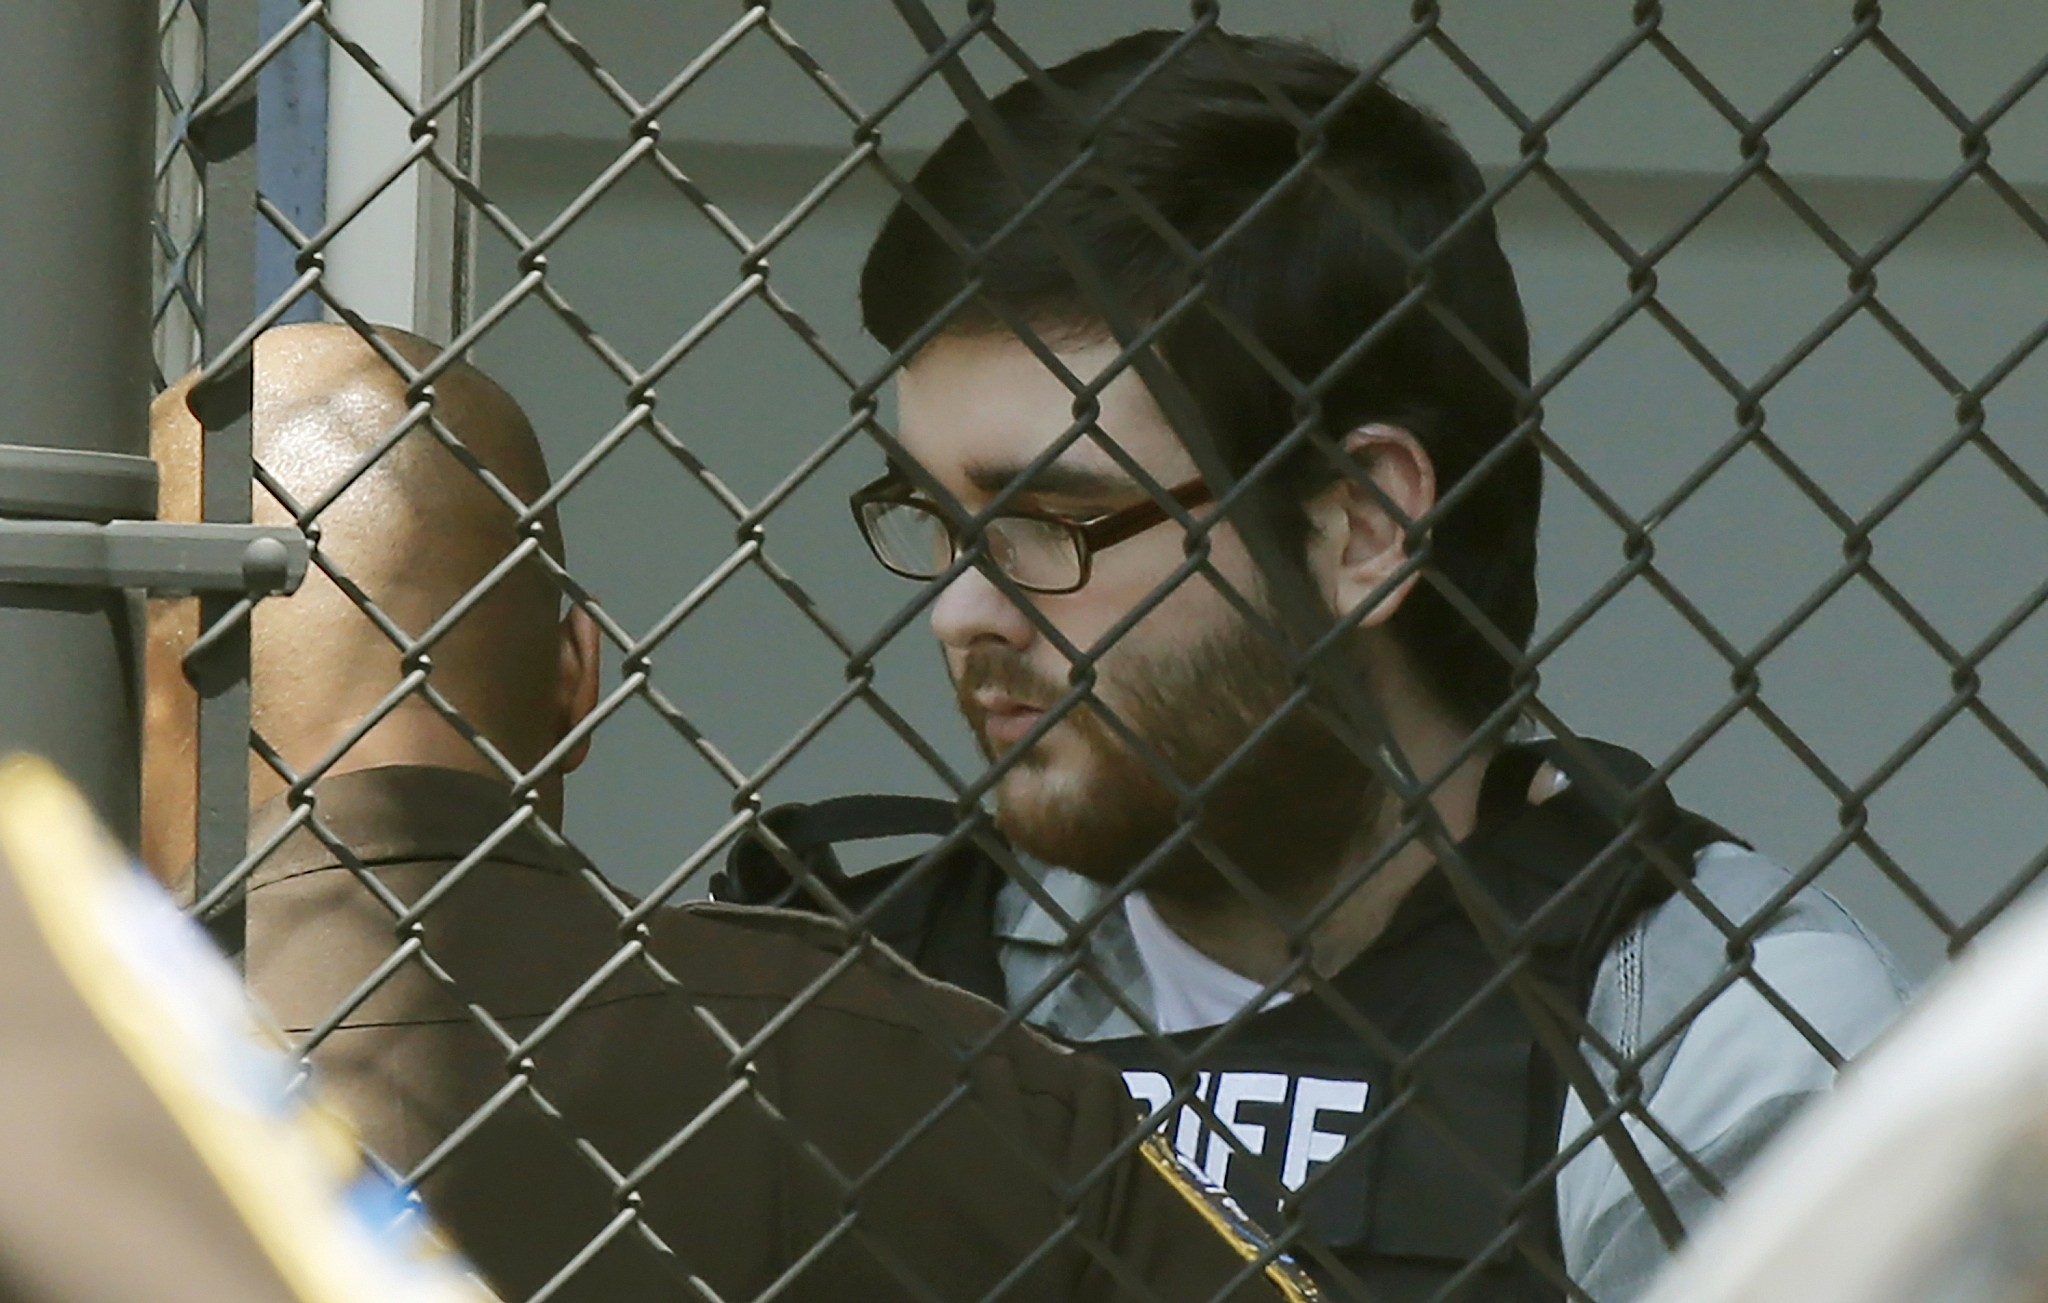 White supremacist gets 2nd life term plus 419 years for